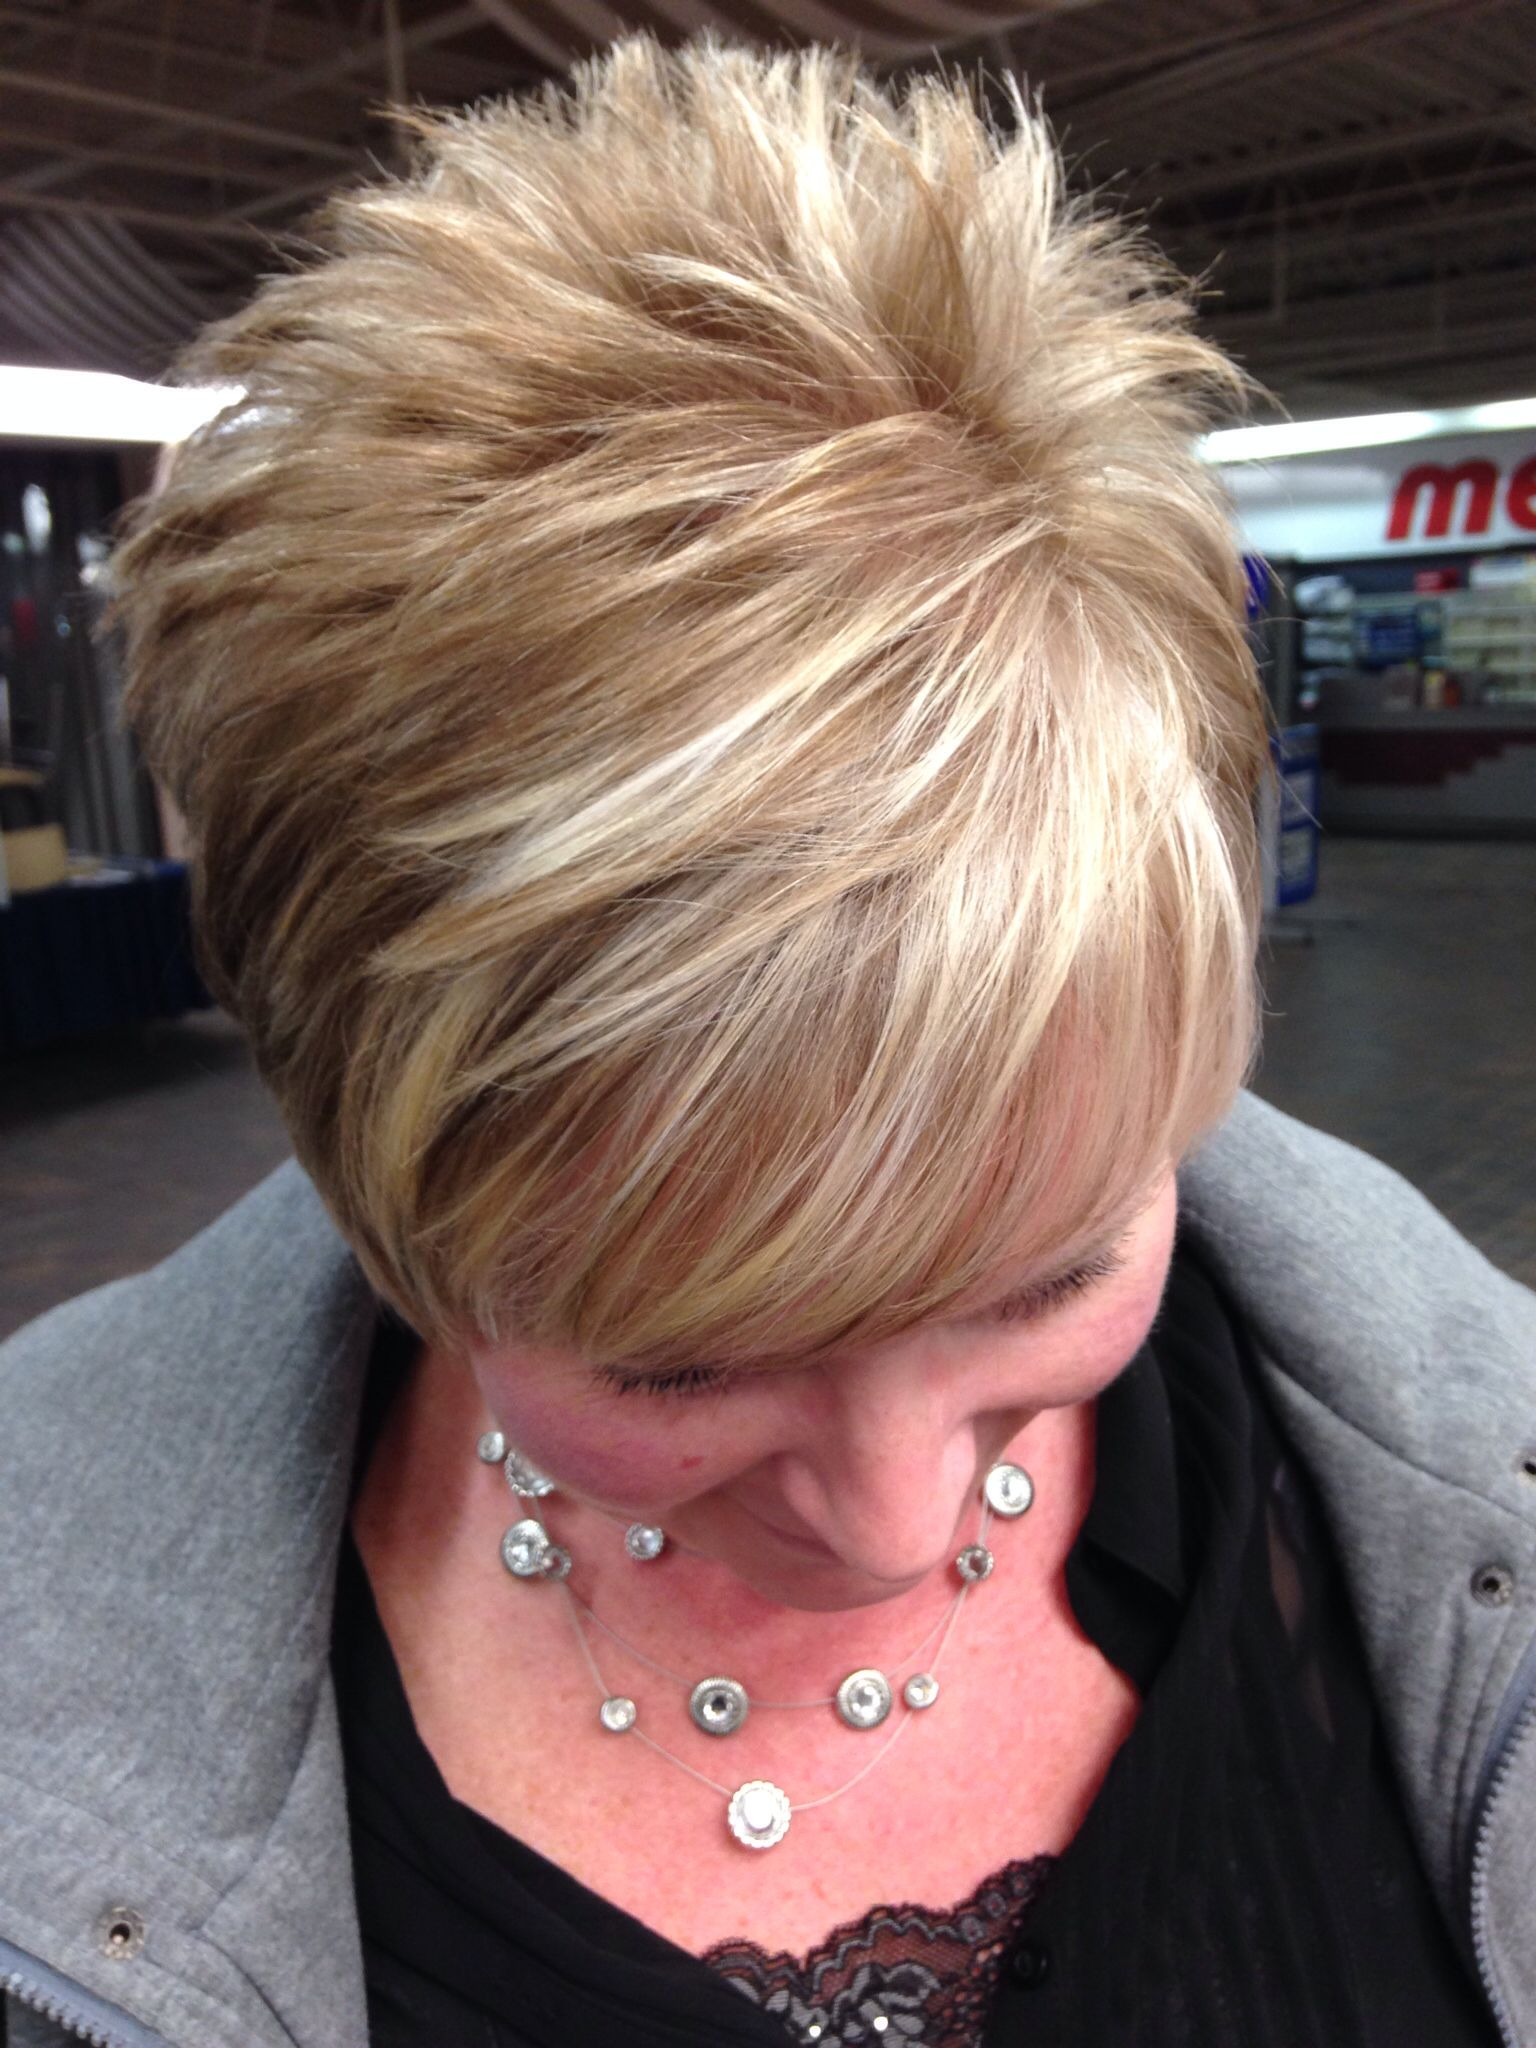 Short hair with blonde highlights hair styles pinterest short hair with blonde highlights pmusecretfo Choice Image